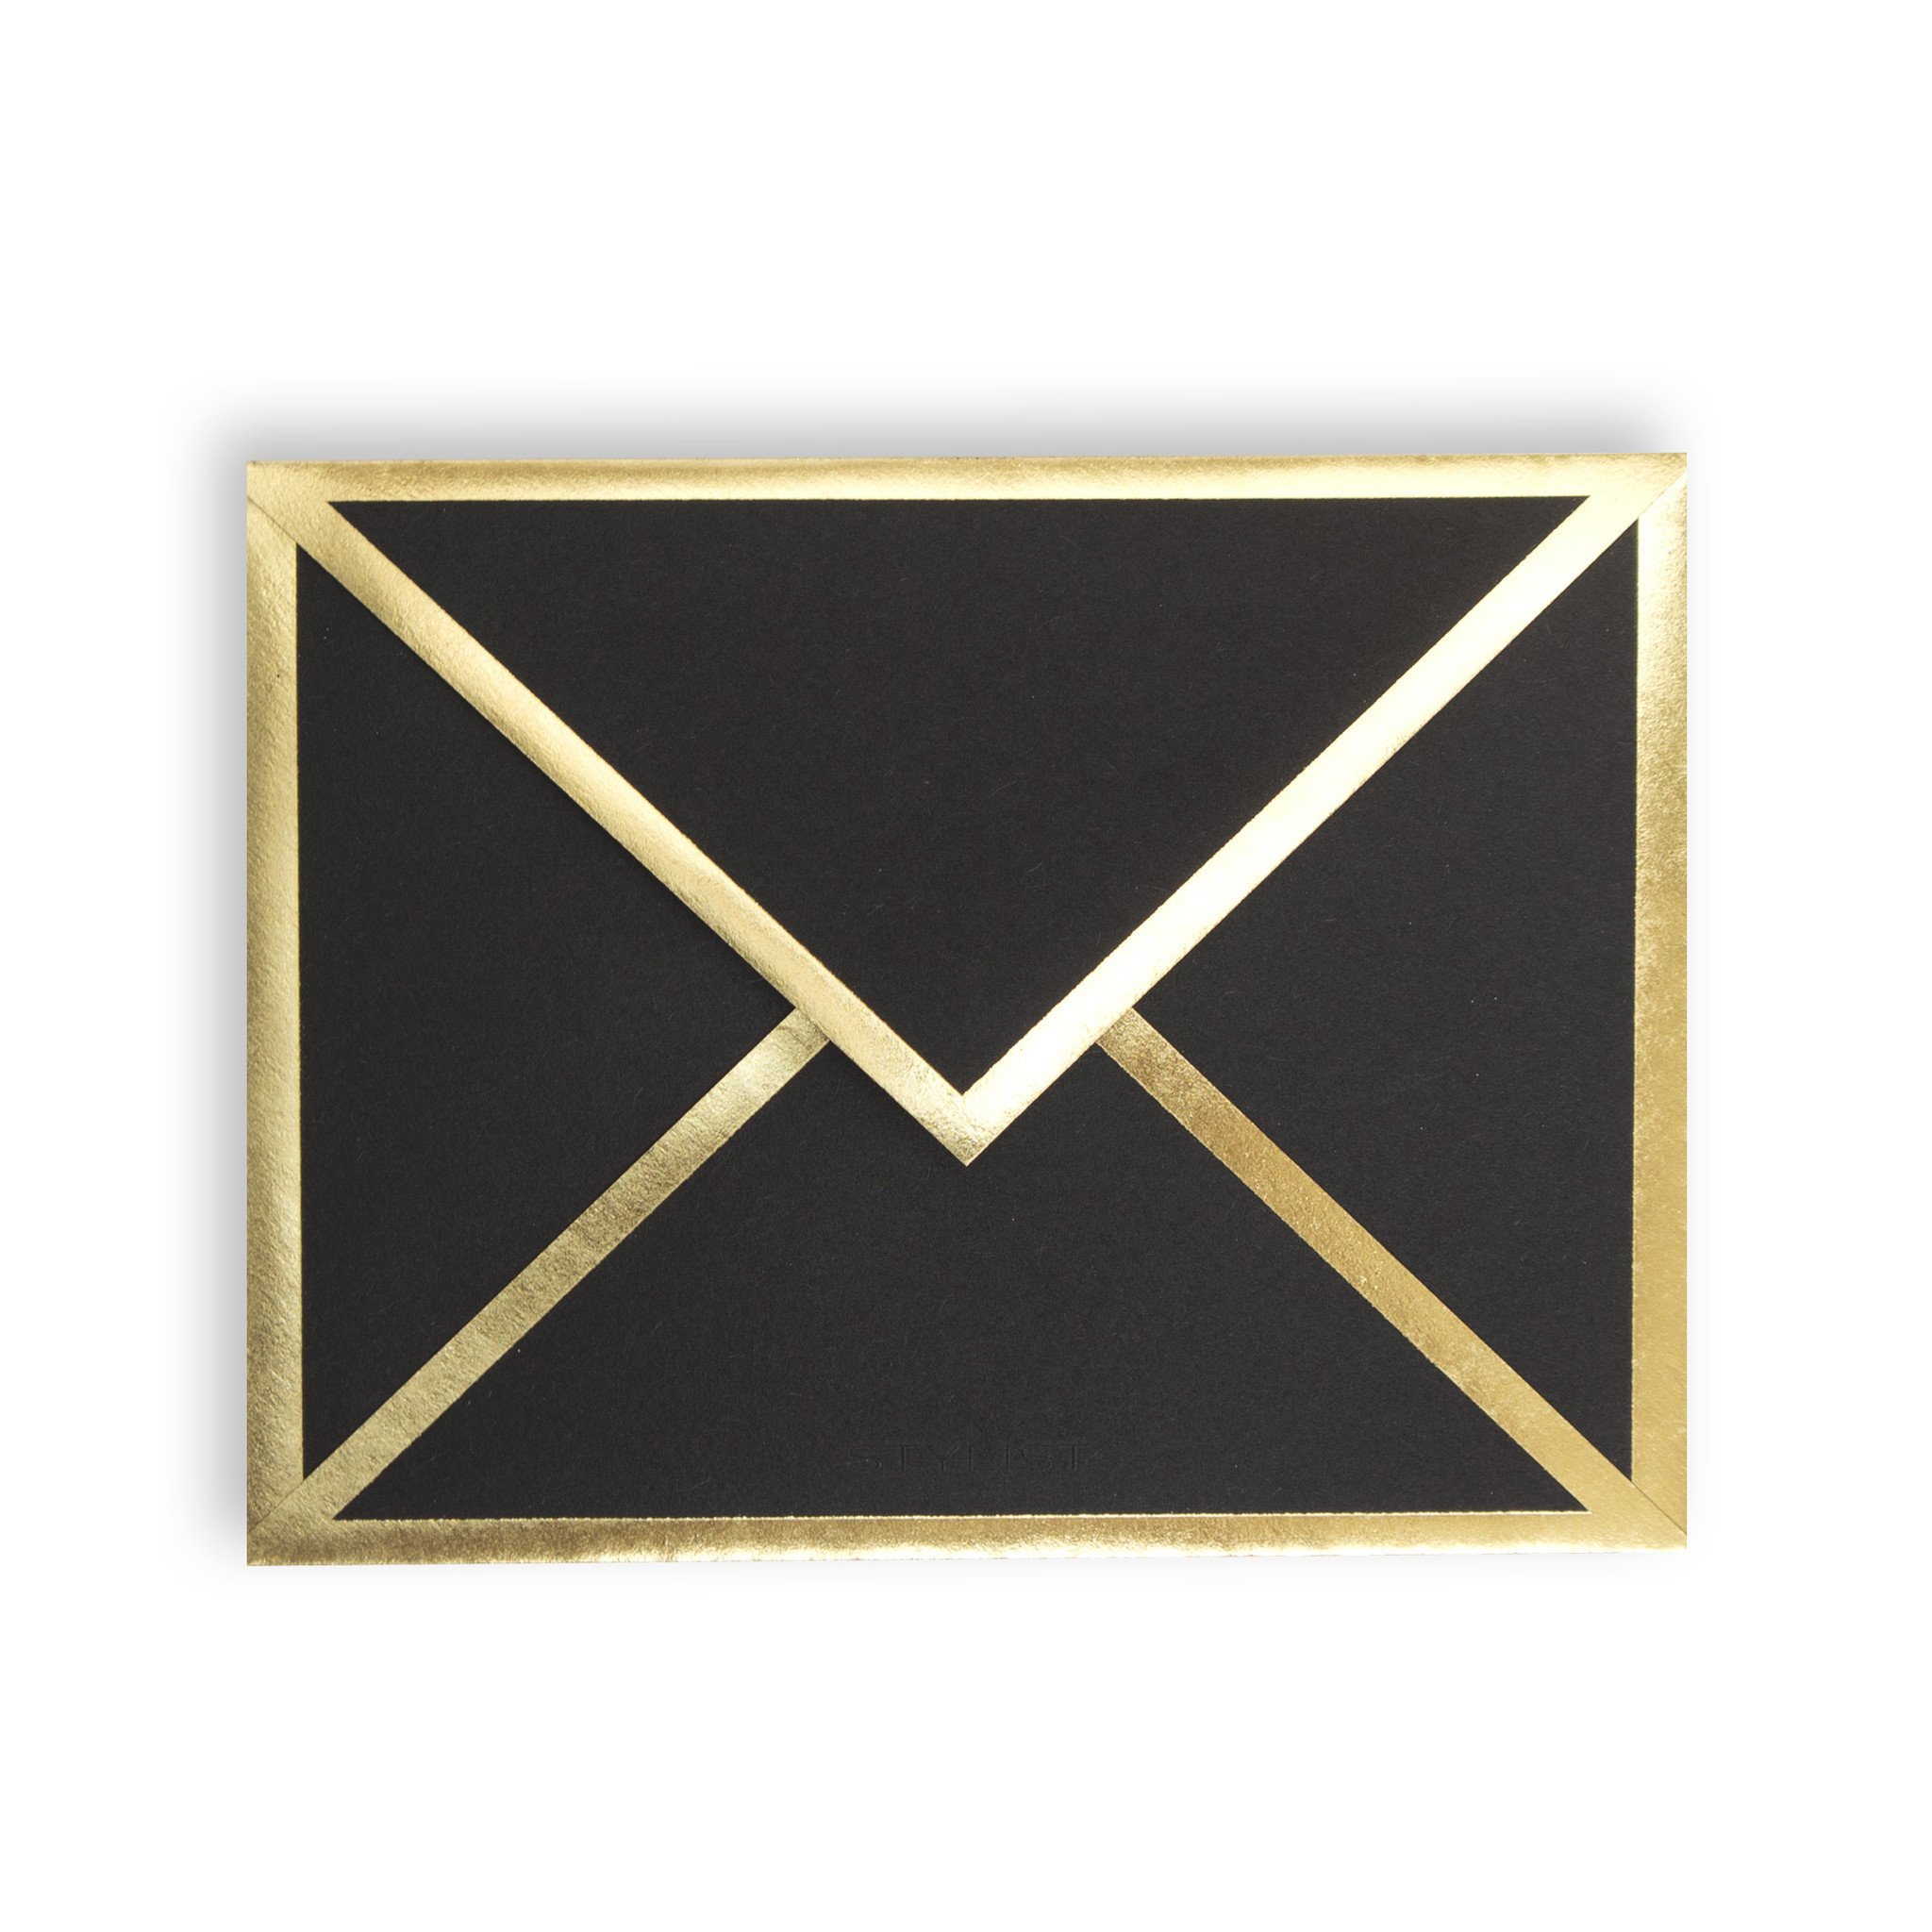 Stylist Paper - 4.25'' x 5.5'' - (6) Blank Black Cards with Gold Foil Border & Envelopes - Made in USA - Eco-Friendly FSC Certified